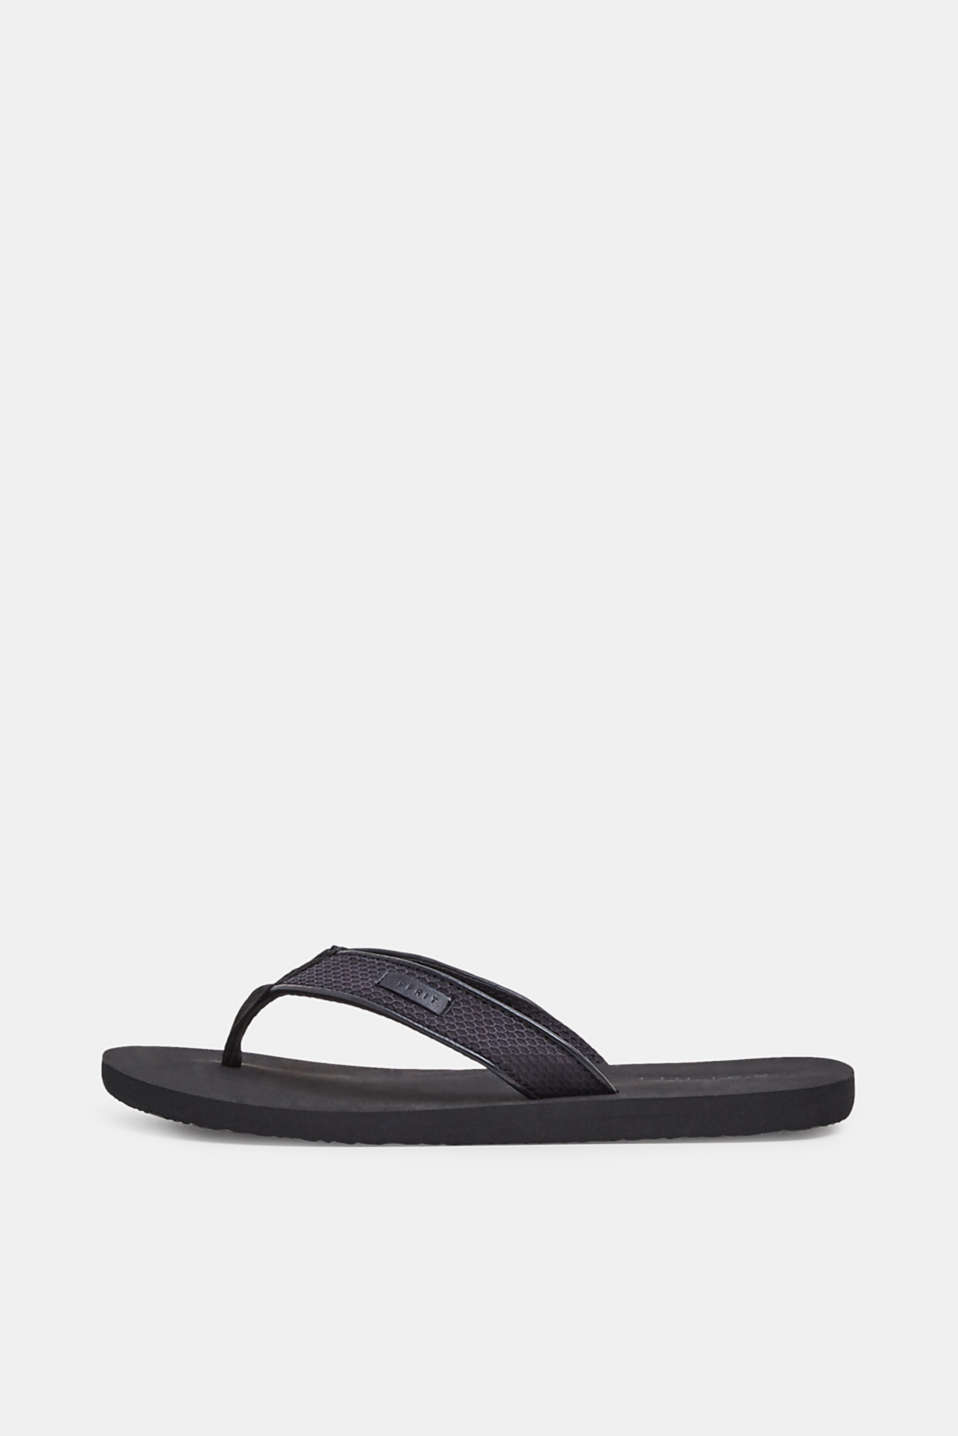 Esprit - Thong sandals with a wide strap